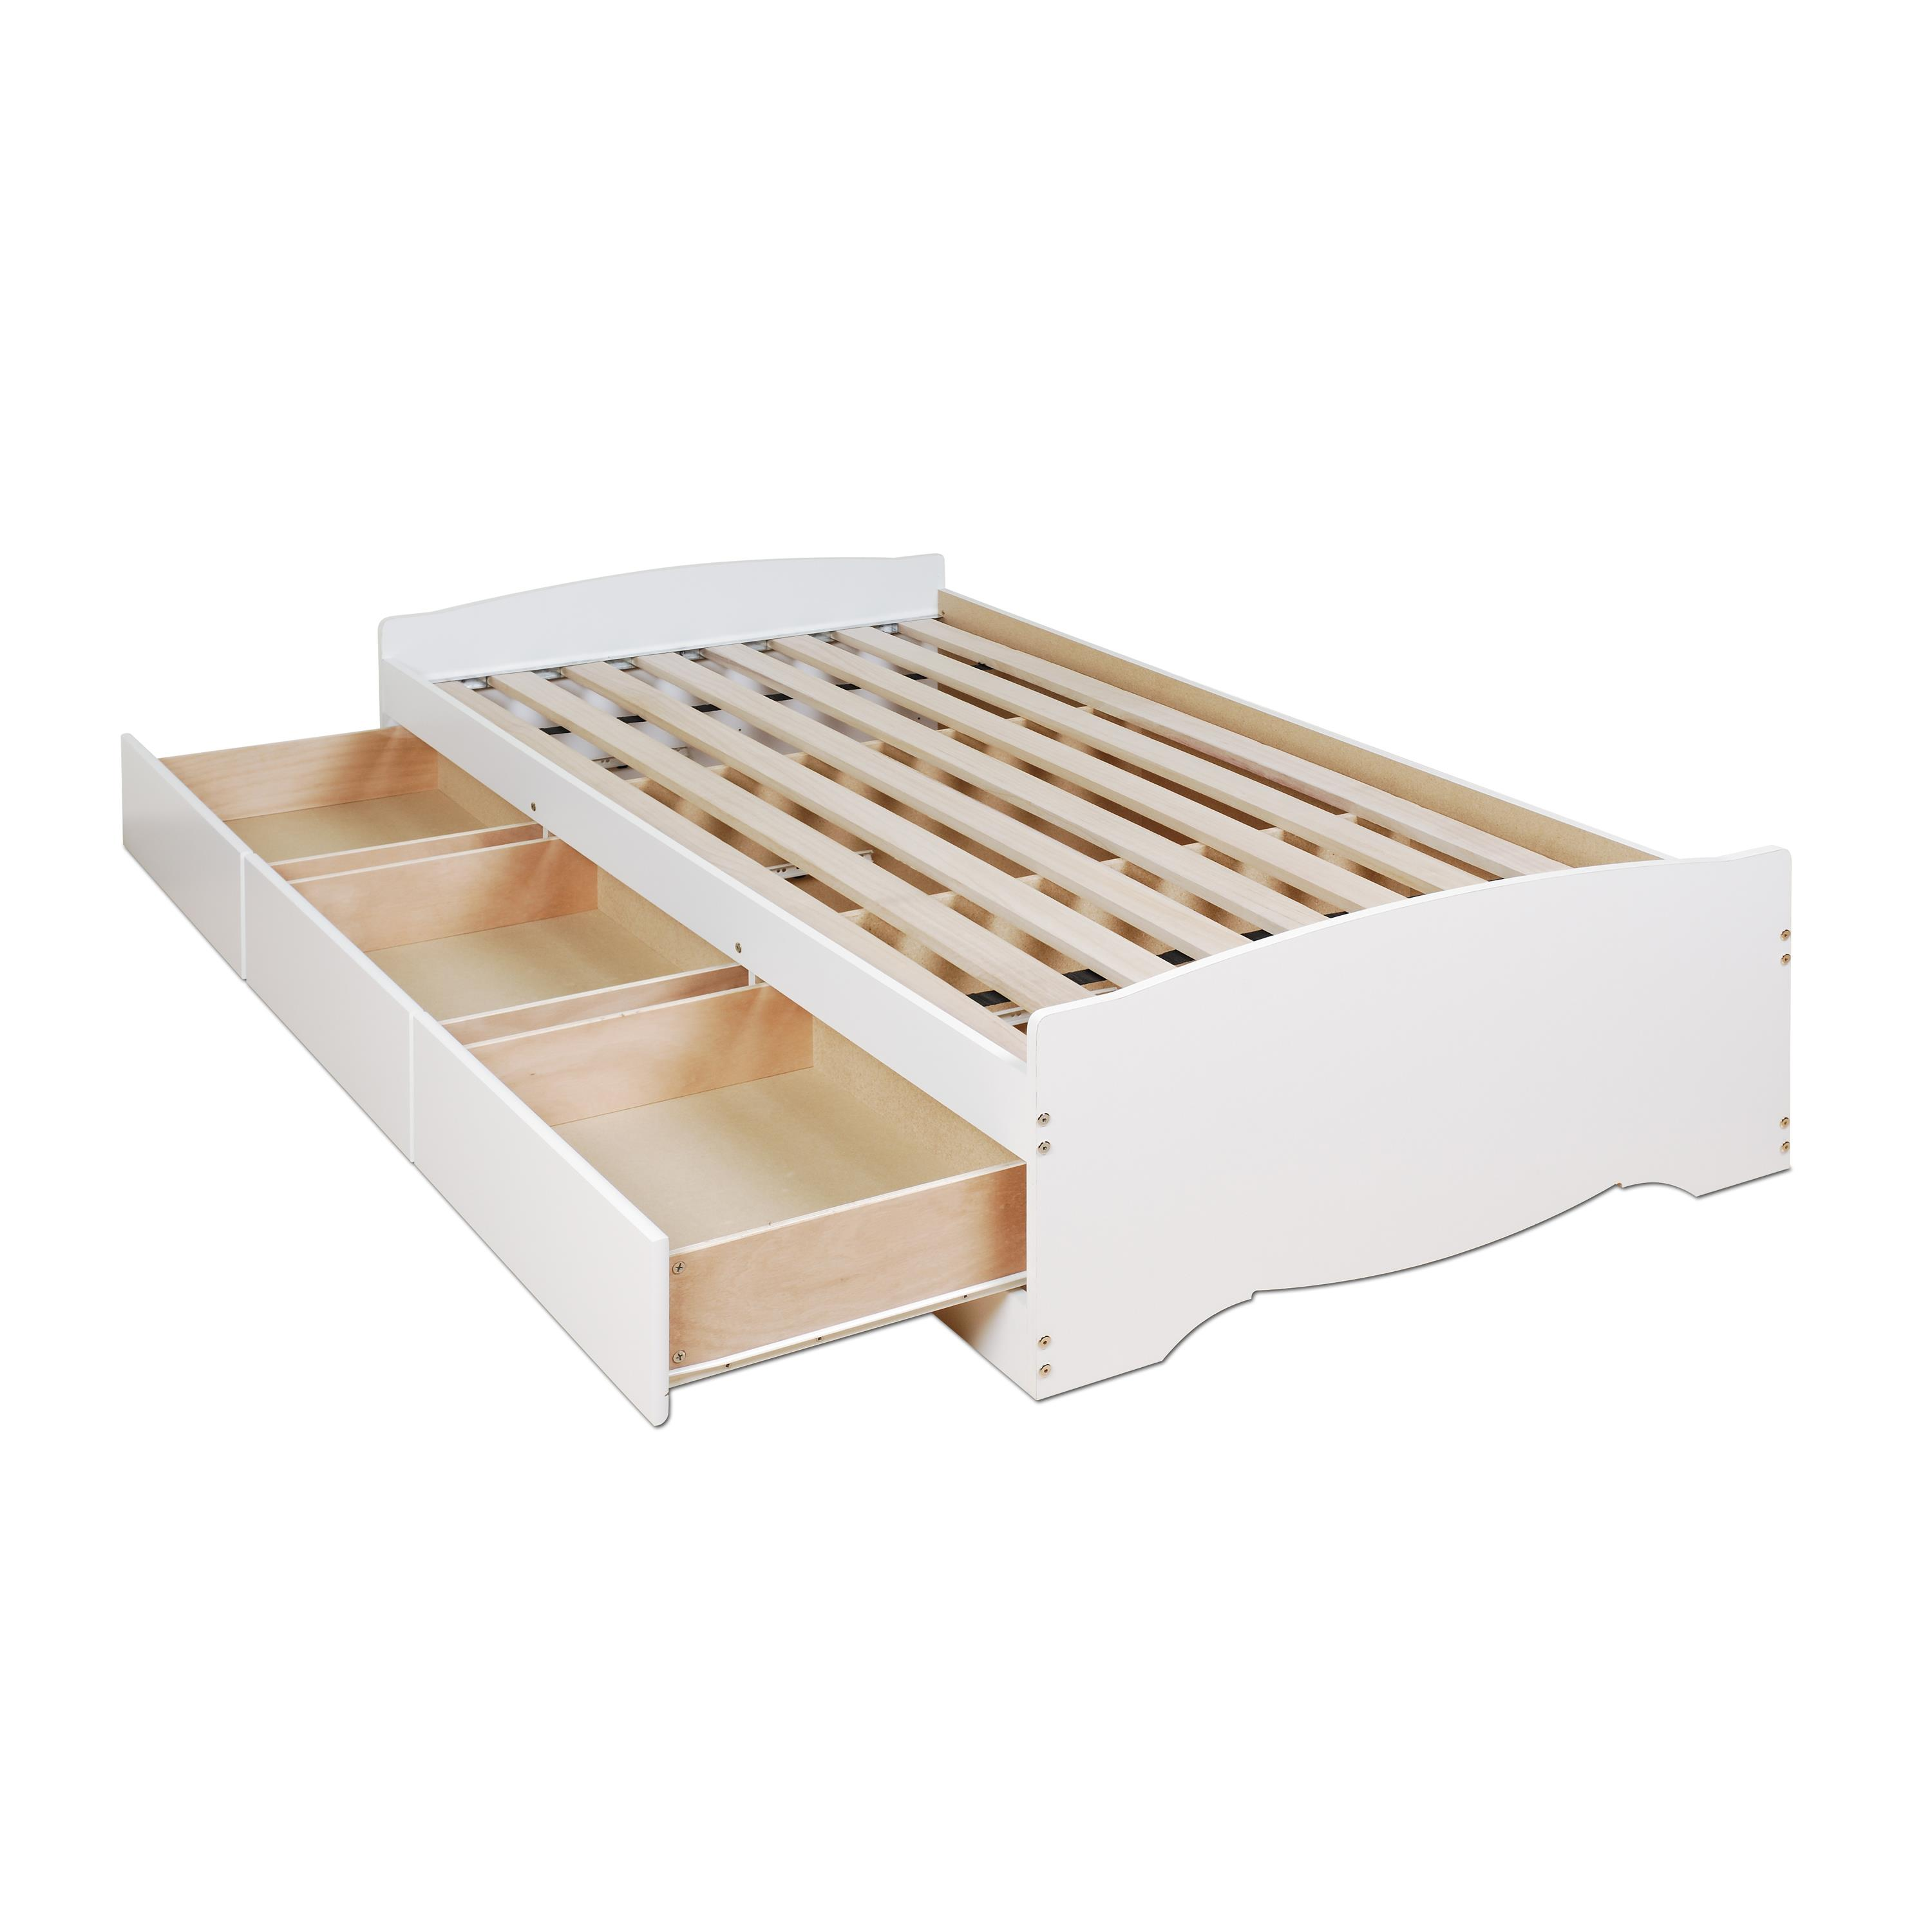 Twin platform bed with drawers - Twin 3 Drawer Platform Storage Bed